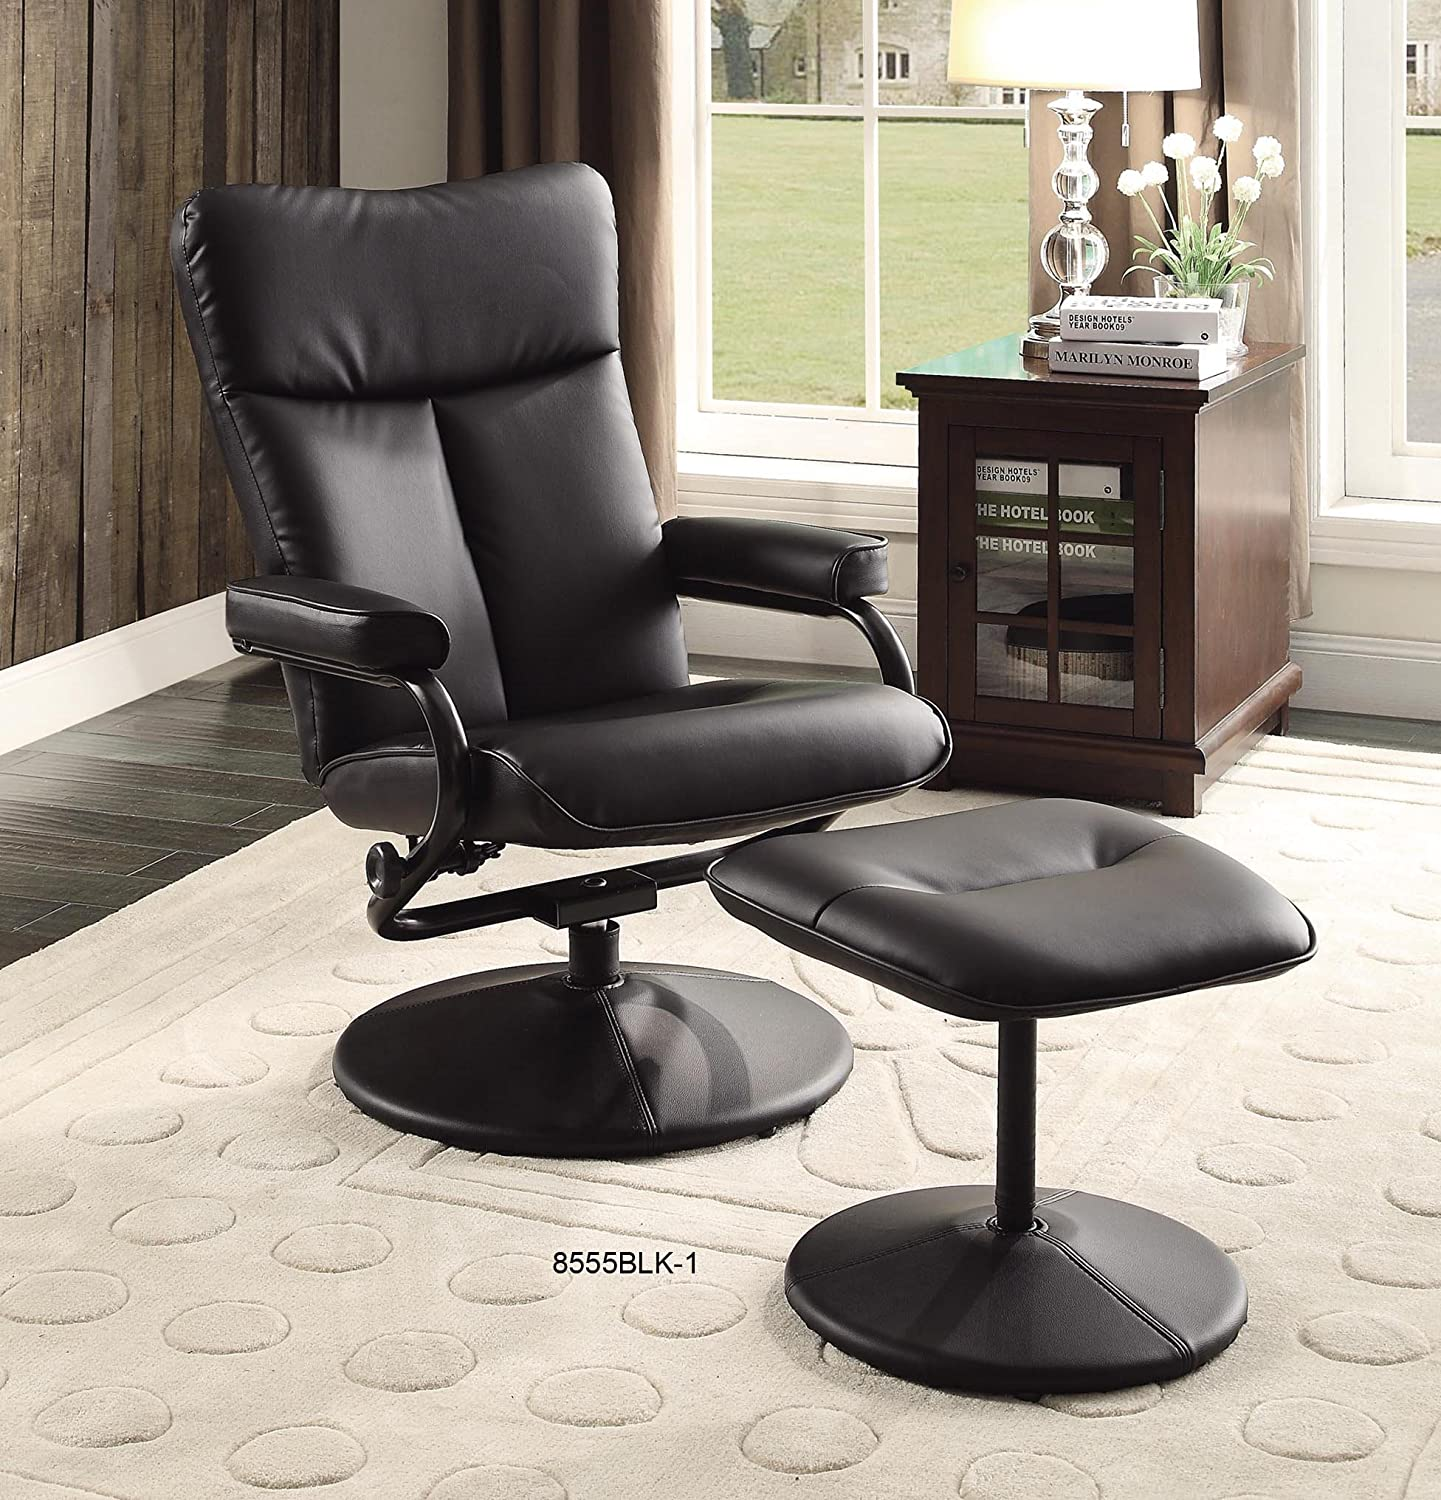 Amazon.com Homelegance 8555WHT-1 Swivel Reclining Chair with Ottoman White Bonded Leather Match Kitchen u0026 Dining & Amazon.com: Homelegance 8555WHT-1 Swivel Reclining Chair with ... islam-shia.org